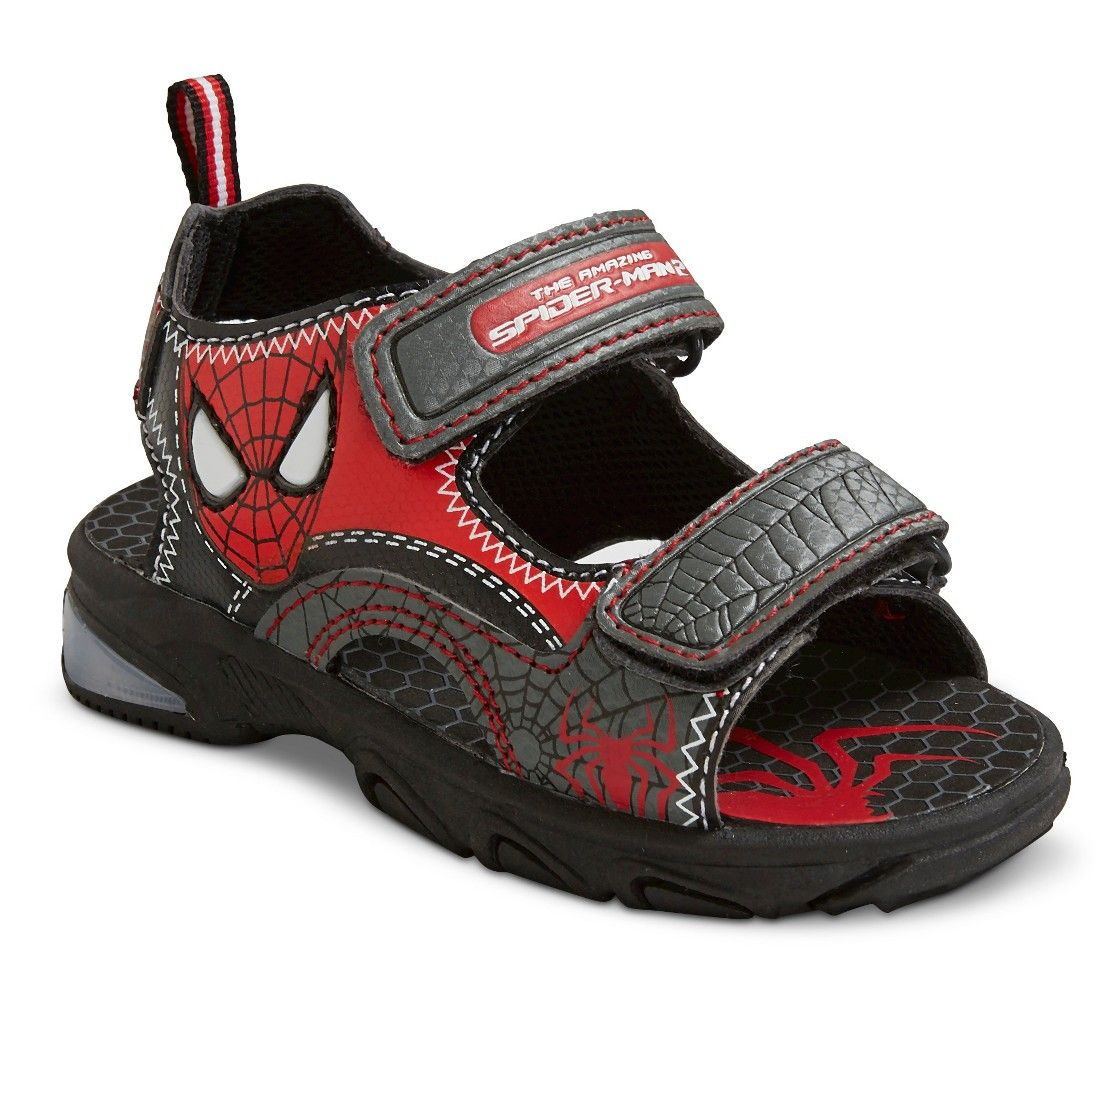 Toddler Boy s Spiderman Light Up Sandals - Black | Black ...